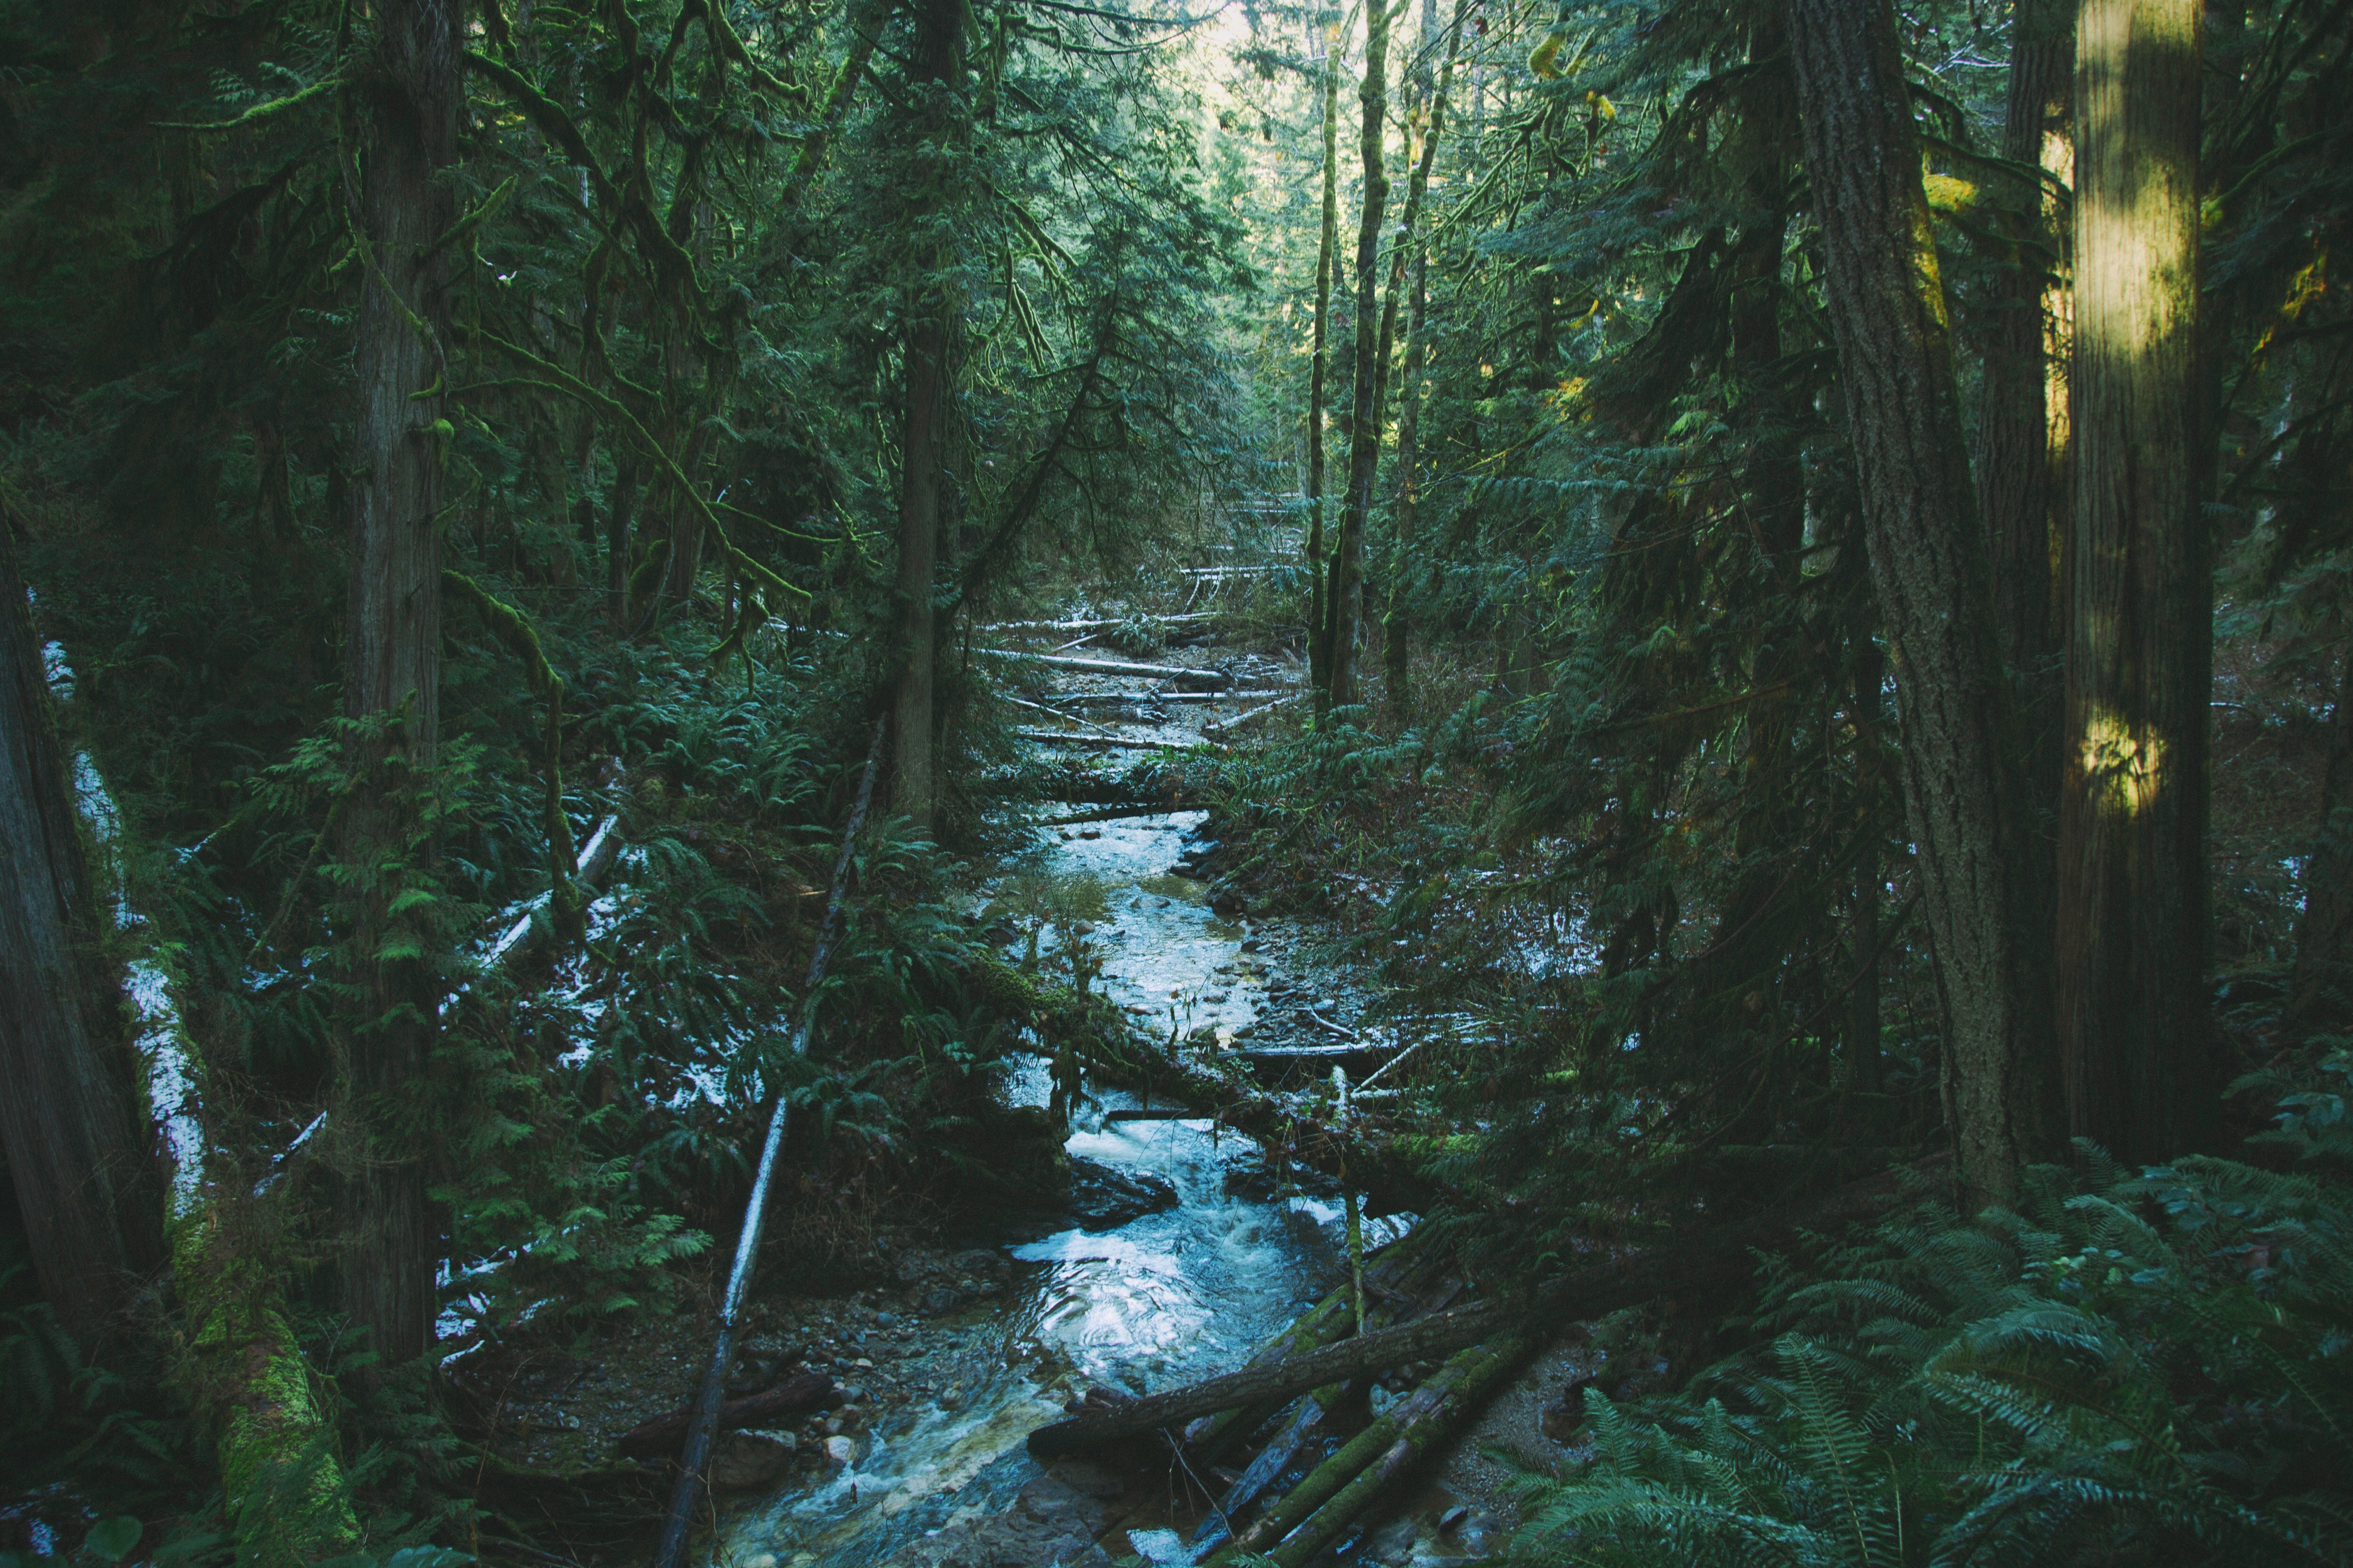 A river flows through an old growth forest in British Columbia